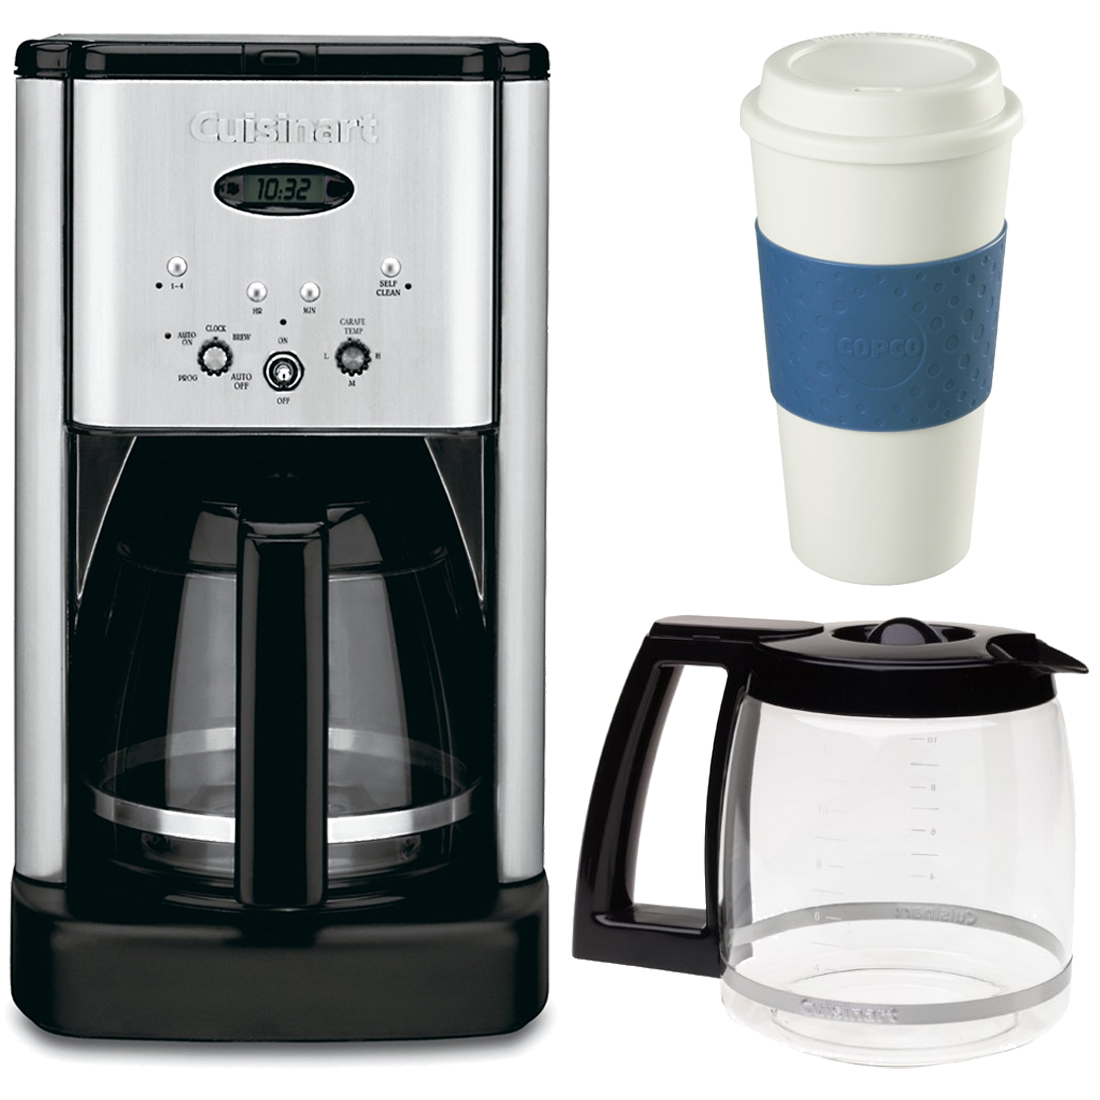 Cuisinart DCC-1200 Brew Central 12 Cup Programmable Coffe...